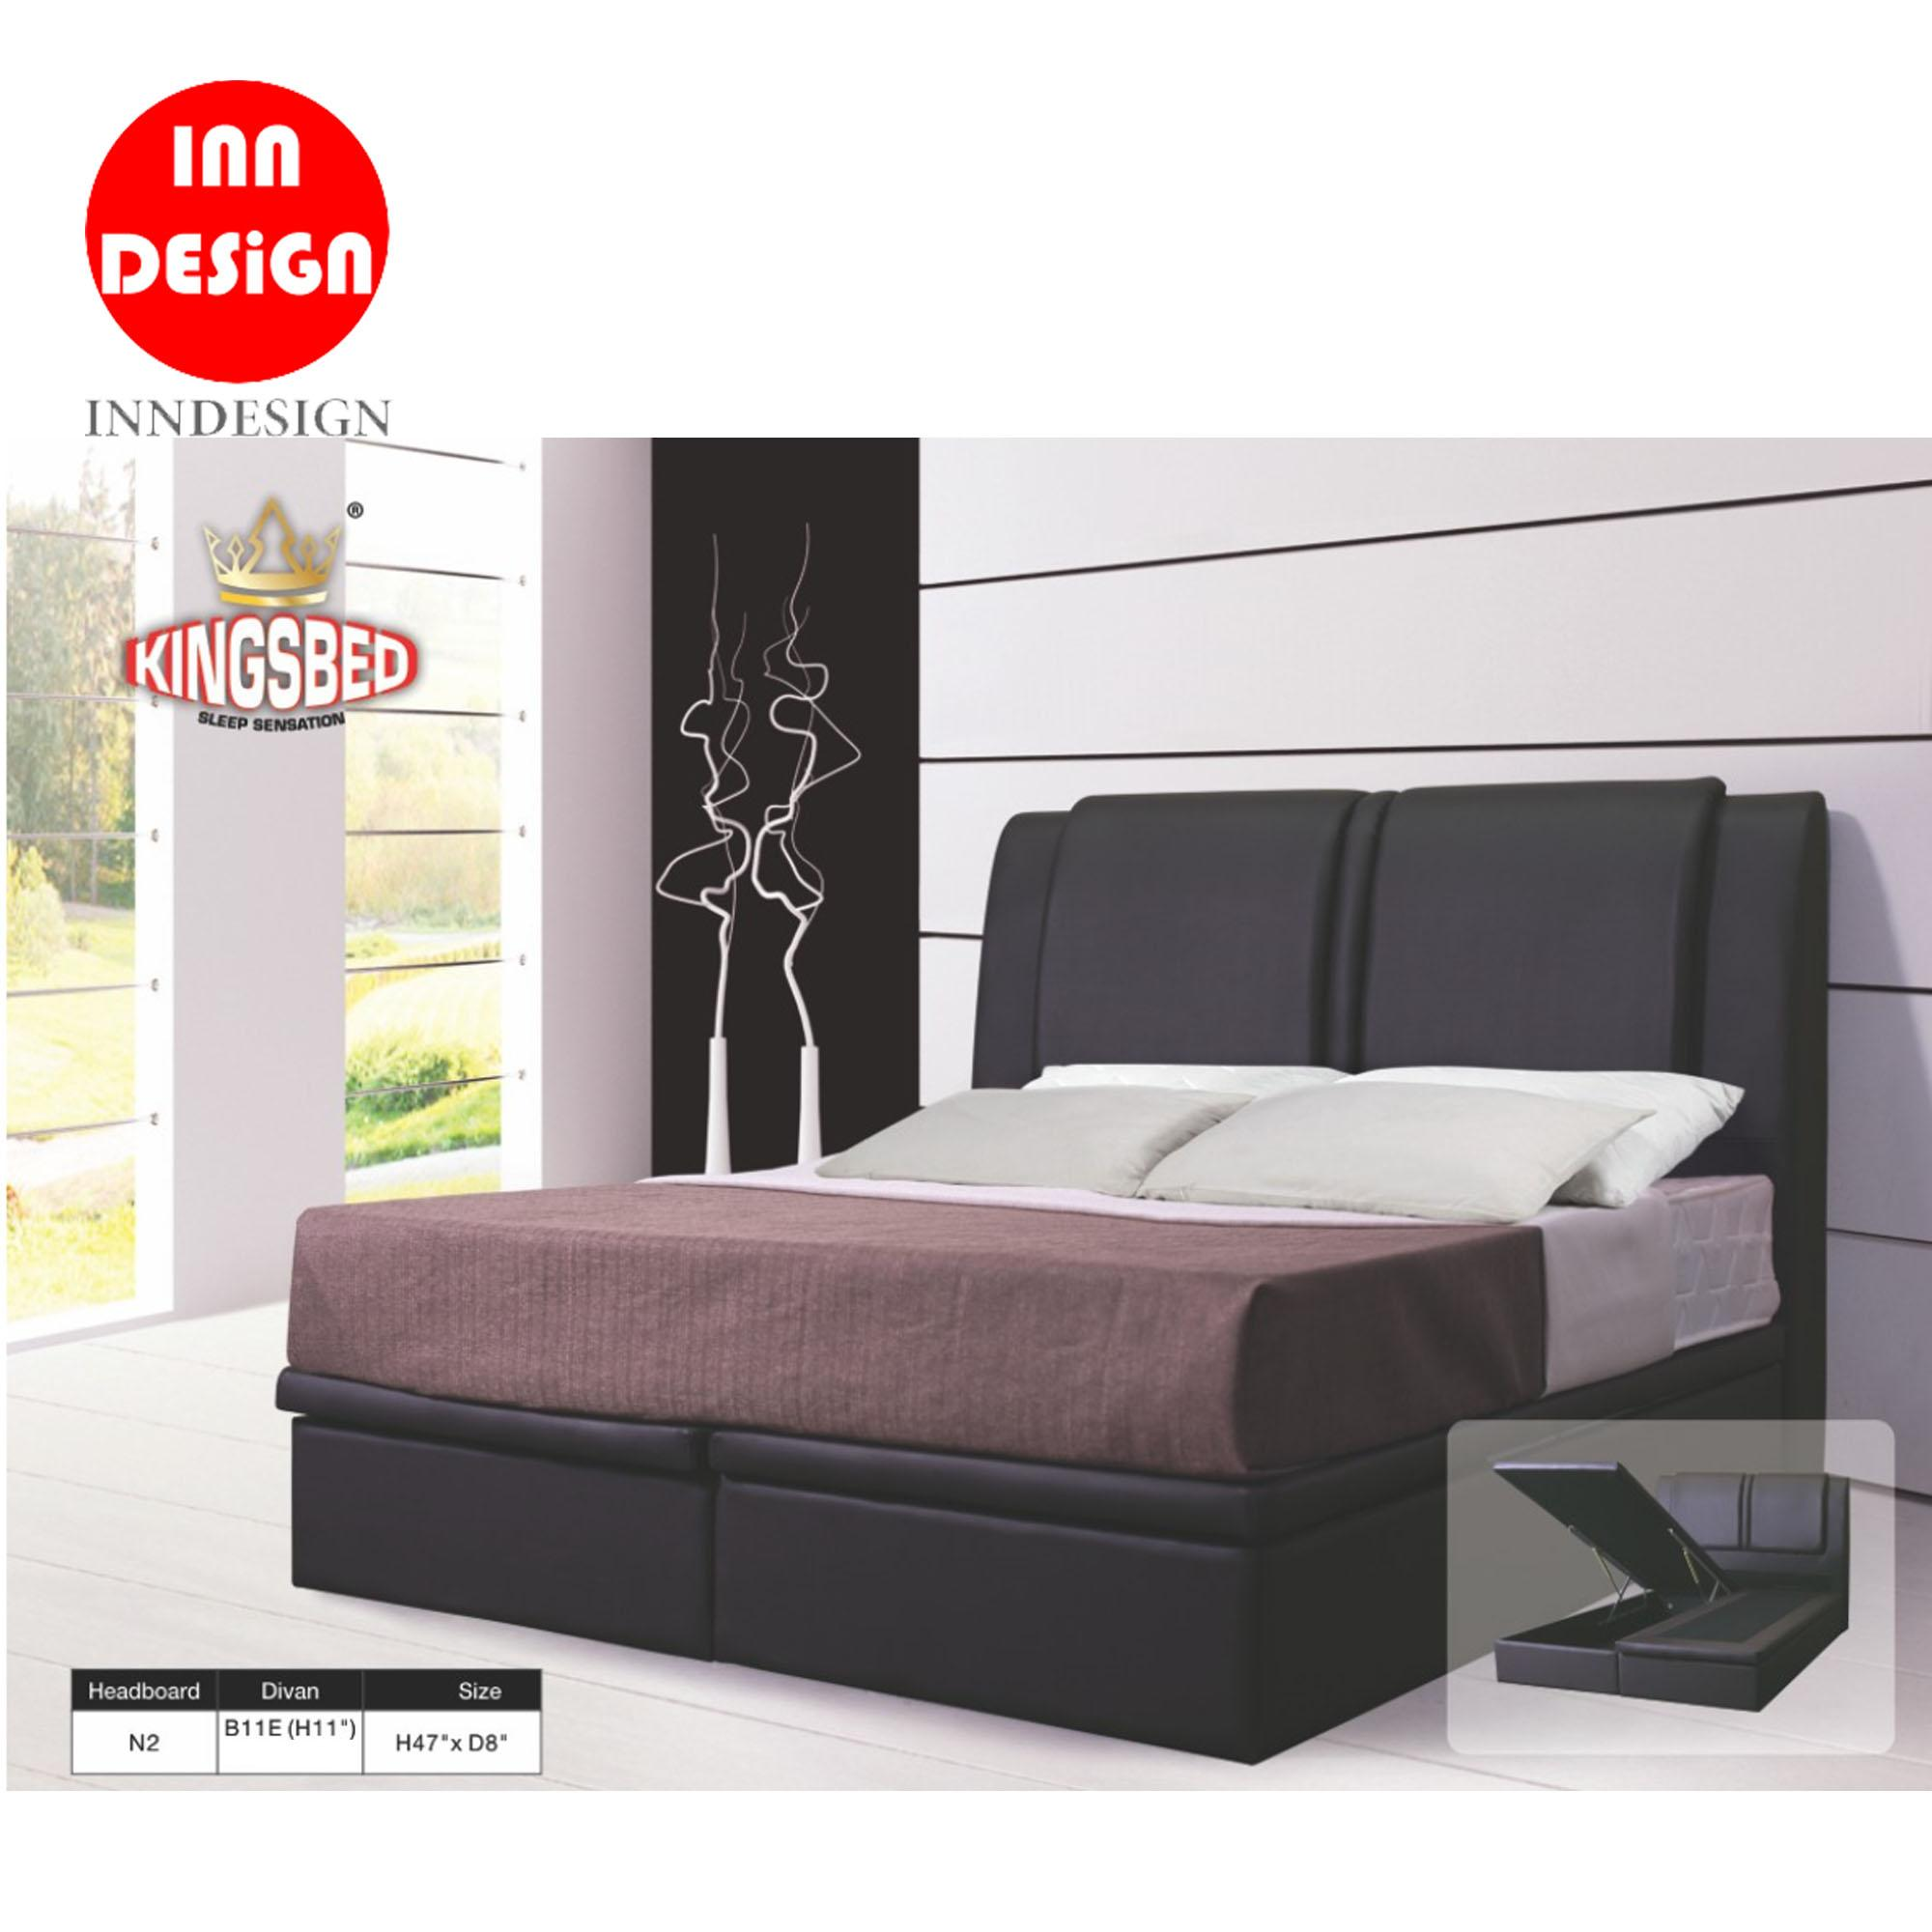 PU Leather Storage Bed with 11 Inches Divan